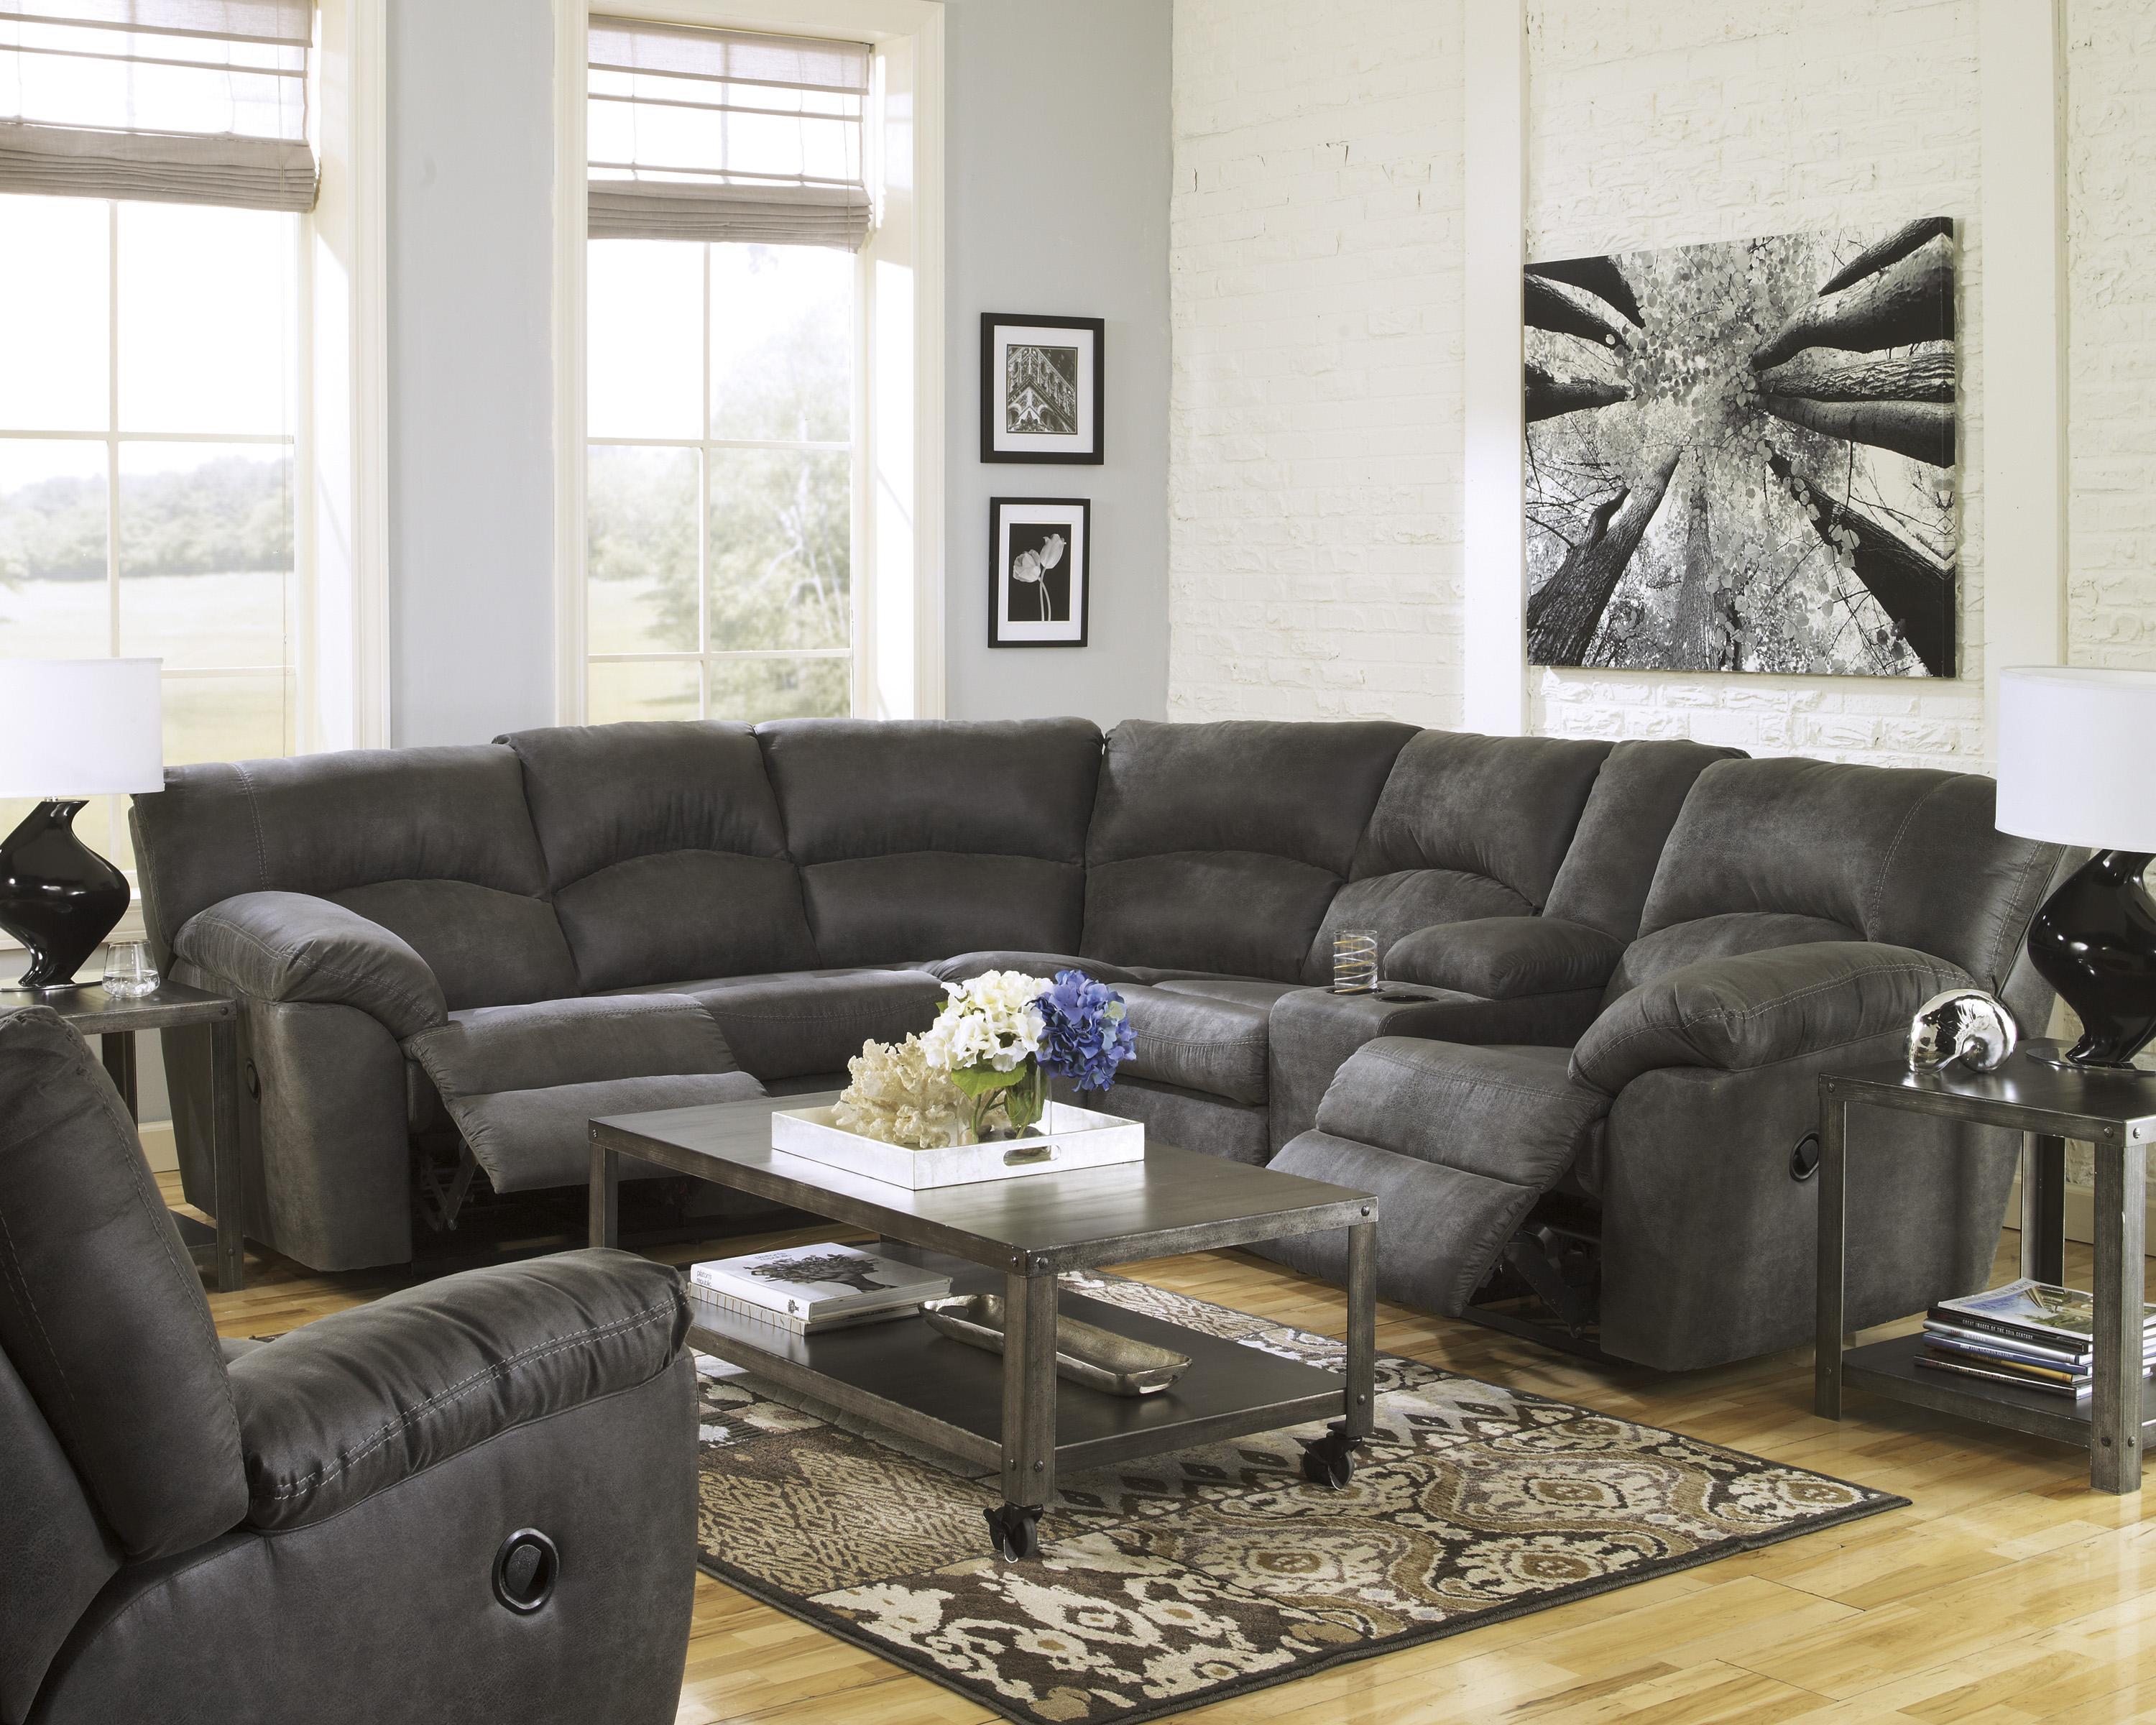 Signature Design by Ashley Tambo - Pewter 2-Piece Reclining Corner Sectional with Center Console - Wayside Furniture - Reclining Sectional Sofas & Signature Design by Ashley Tambo - Pewter 2-Piece Reclining Corner ... islam-shia.org